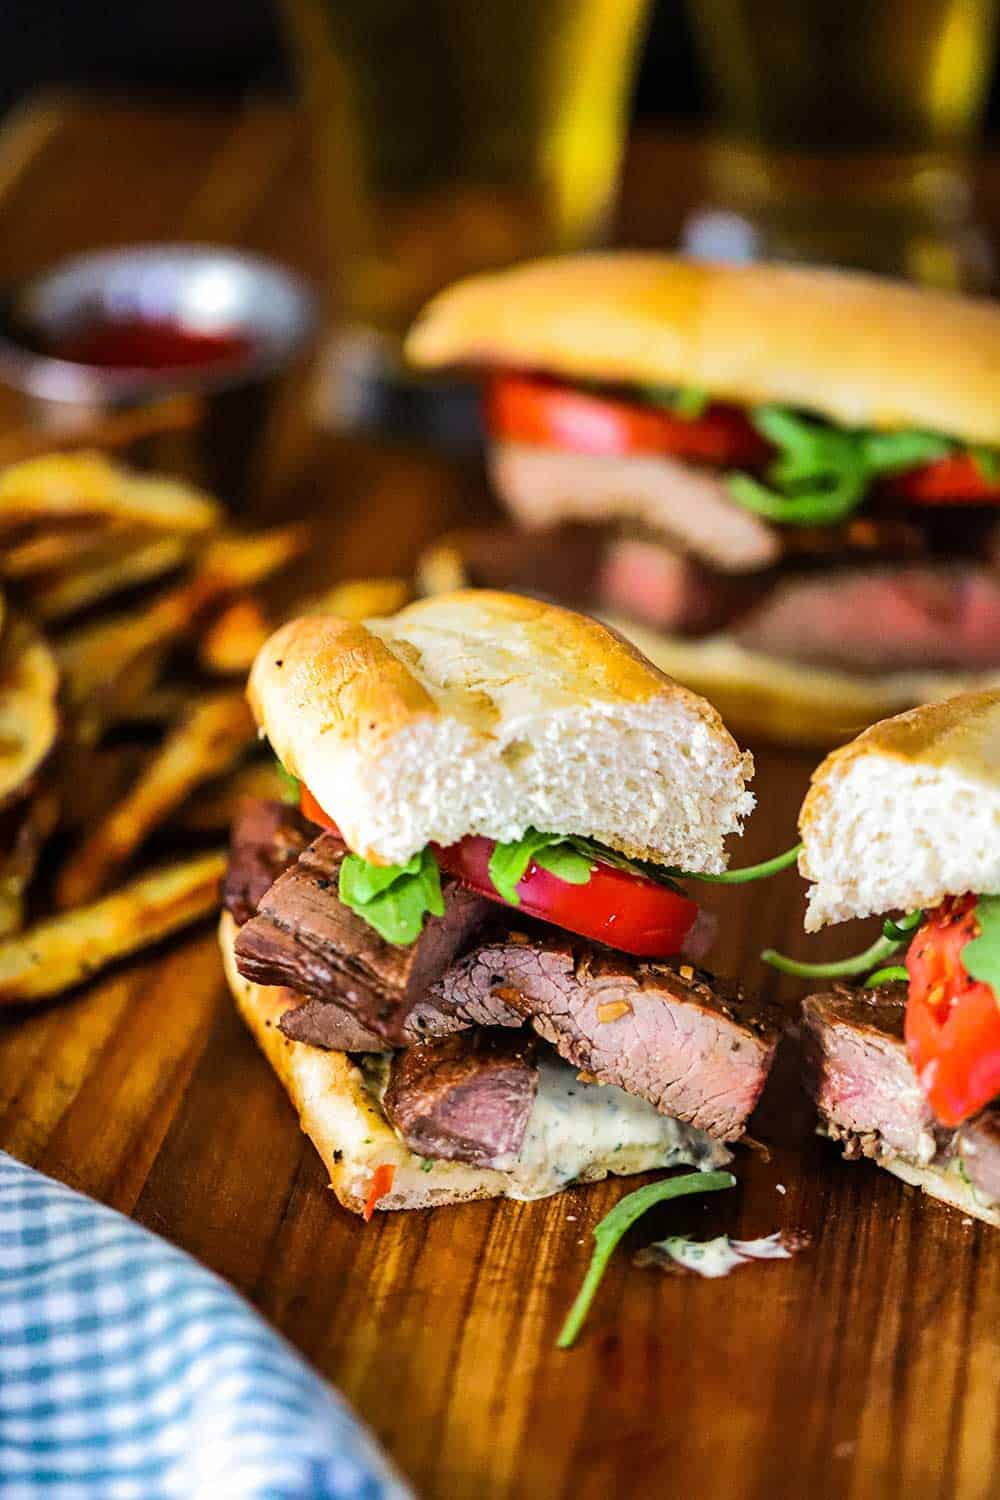 A grilled steak sandwich that has been cut in half and is sitting on a cutting board next to steak fries.